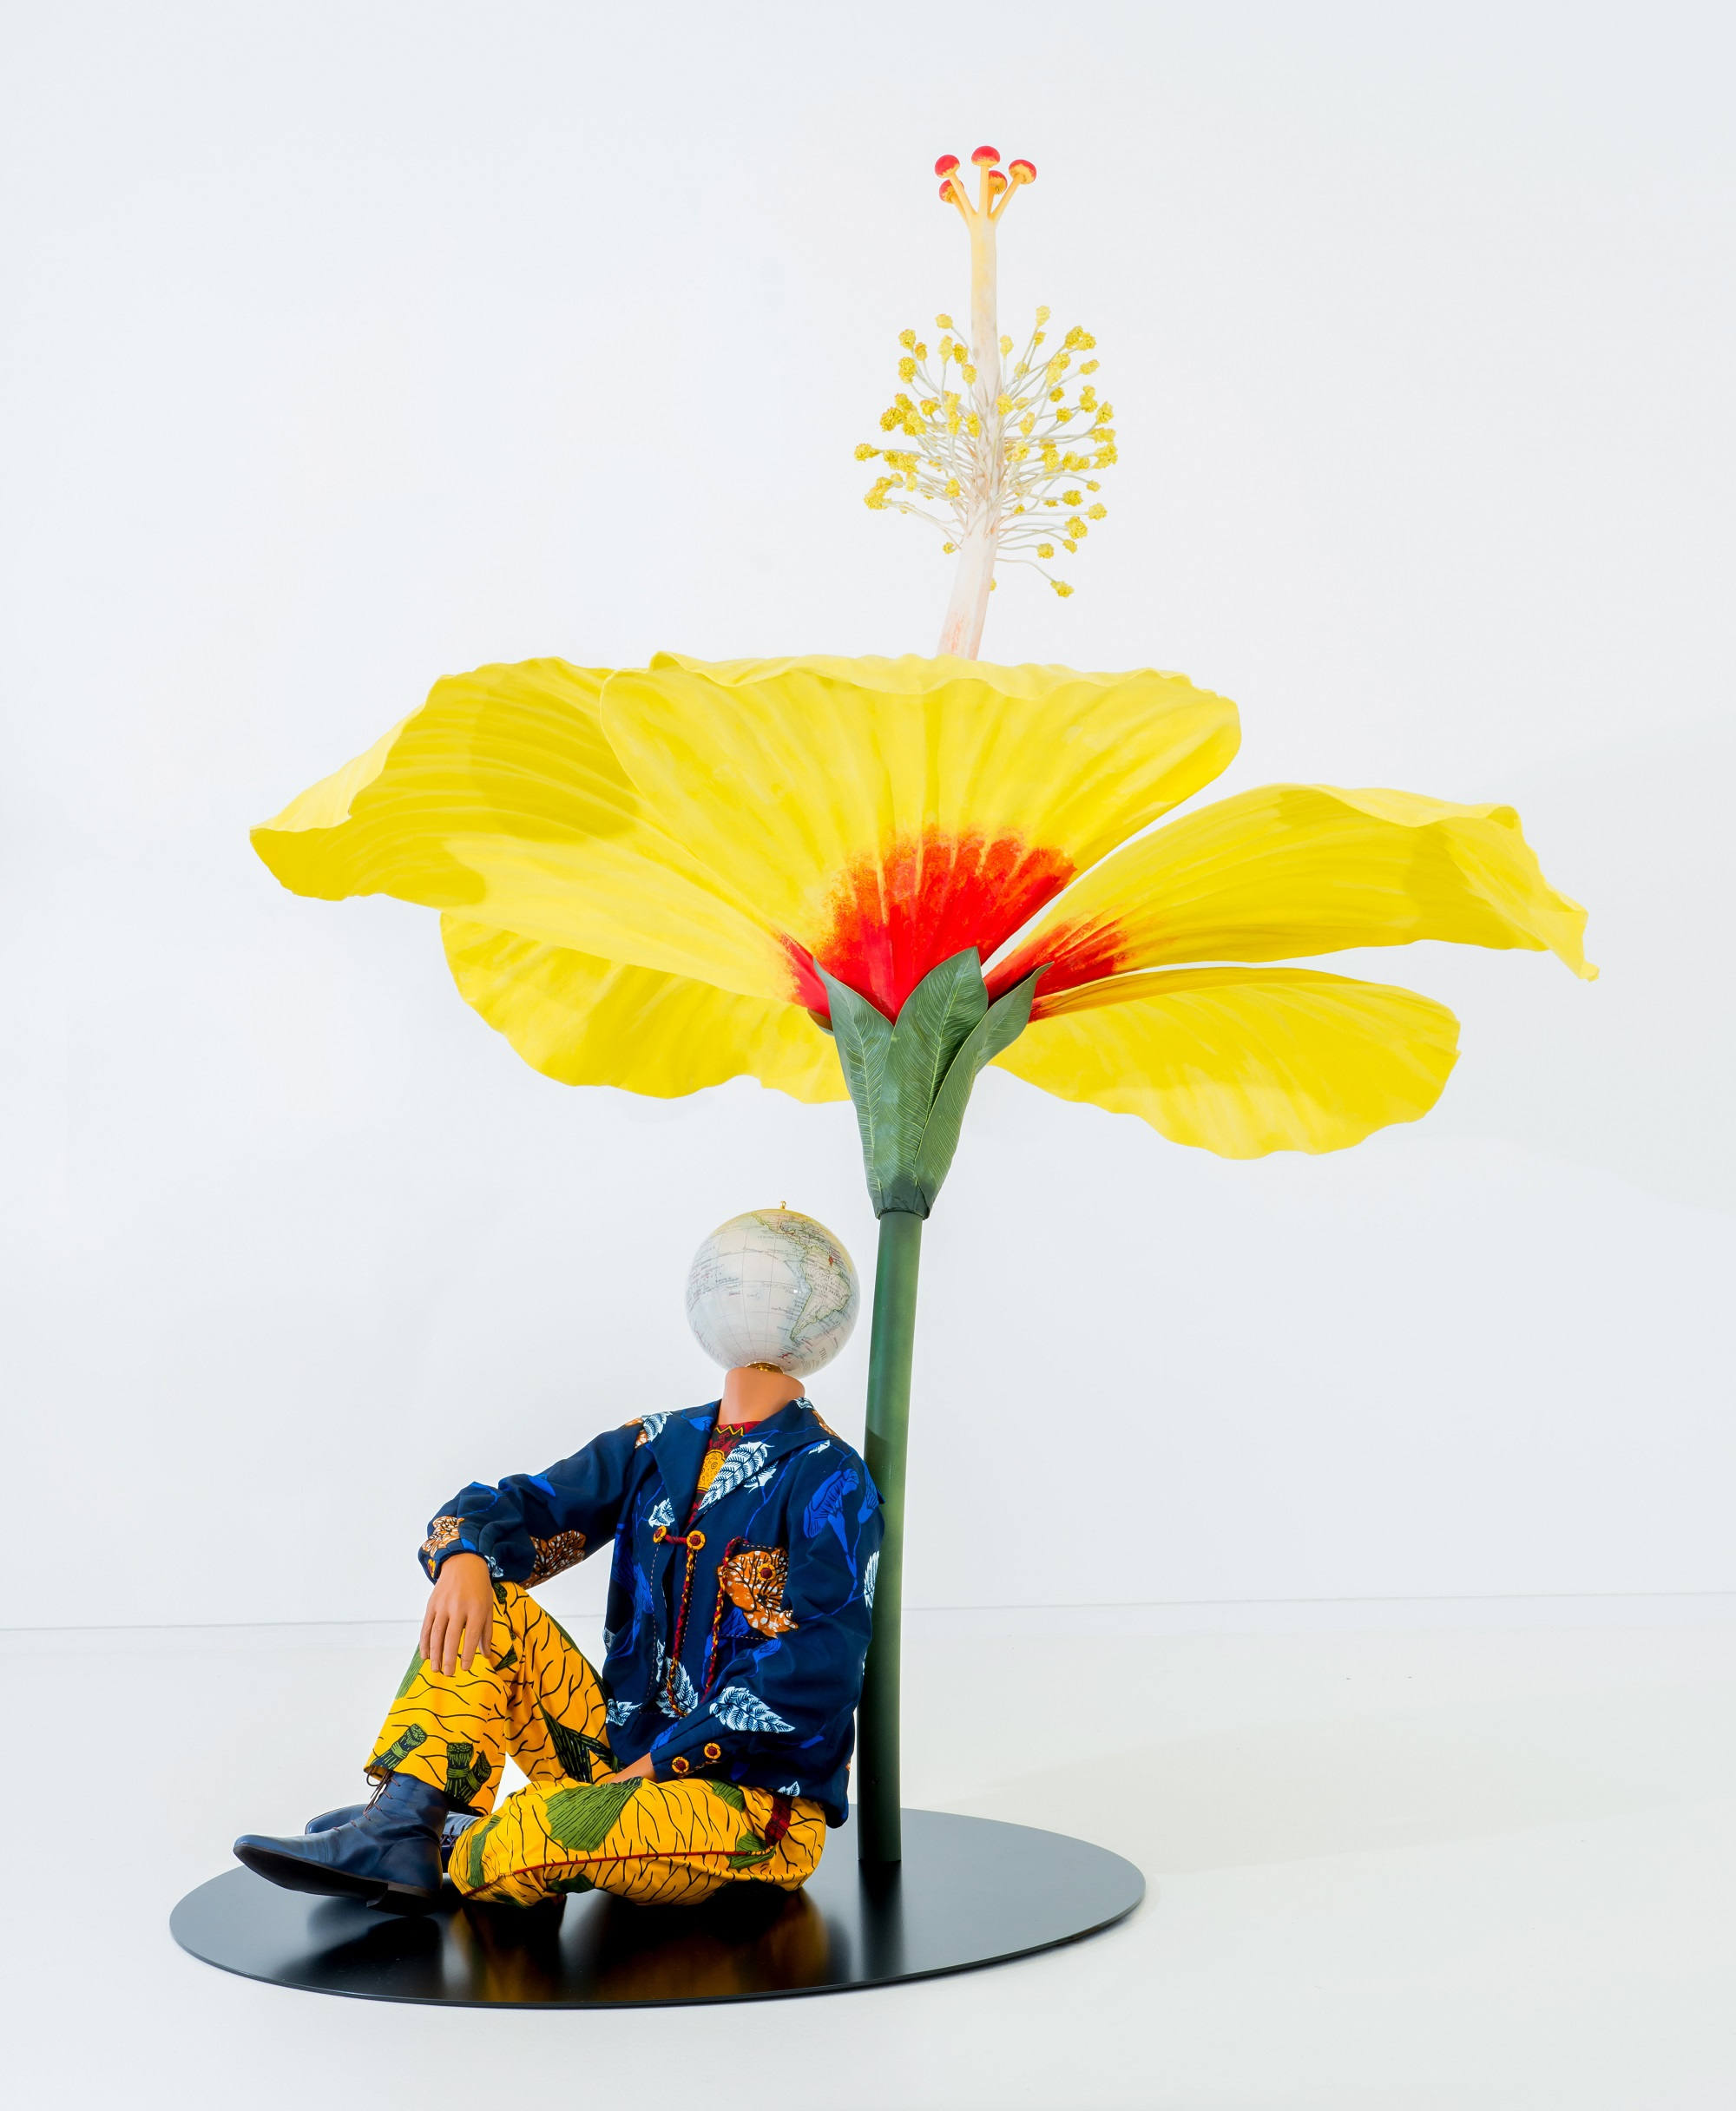 インカ・ショニバレCBE 《ハイビスカスの下に座る少年》 2015年 Yinka Shonibare CBE Studio, London Pearl Lam Galleries, Hong Kong, Singapore and Shanghai Photo Thomas Liu